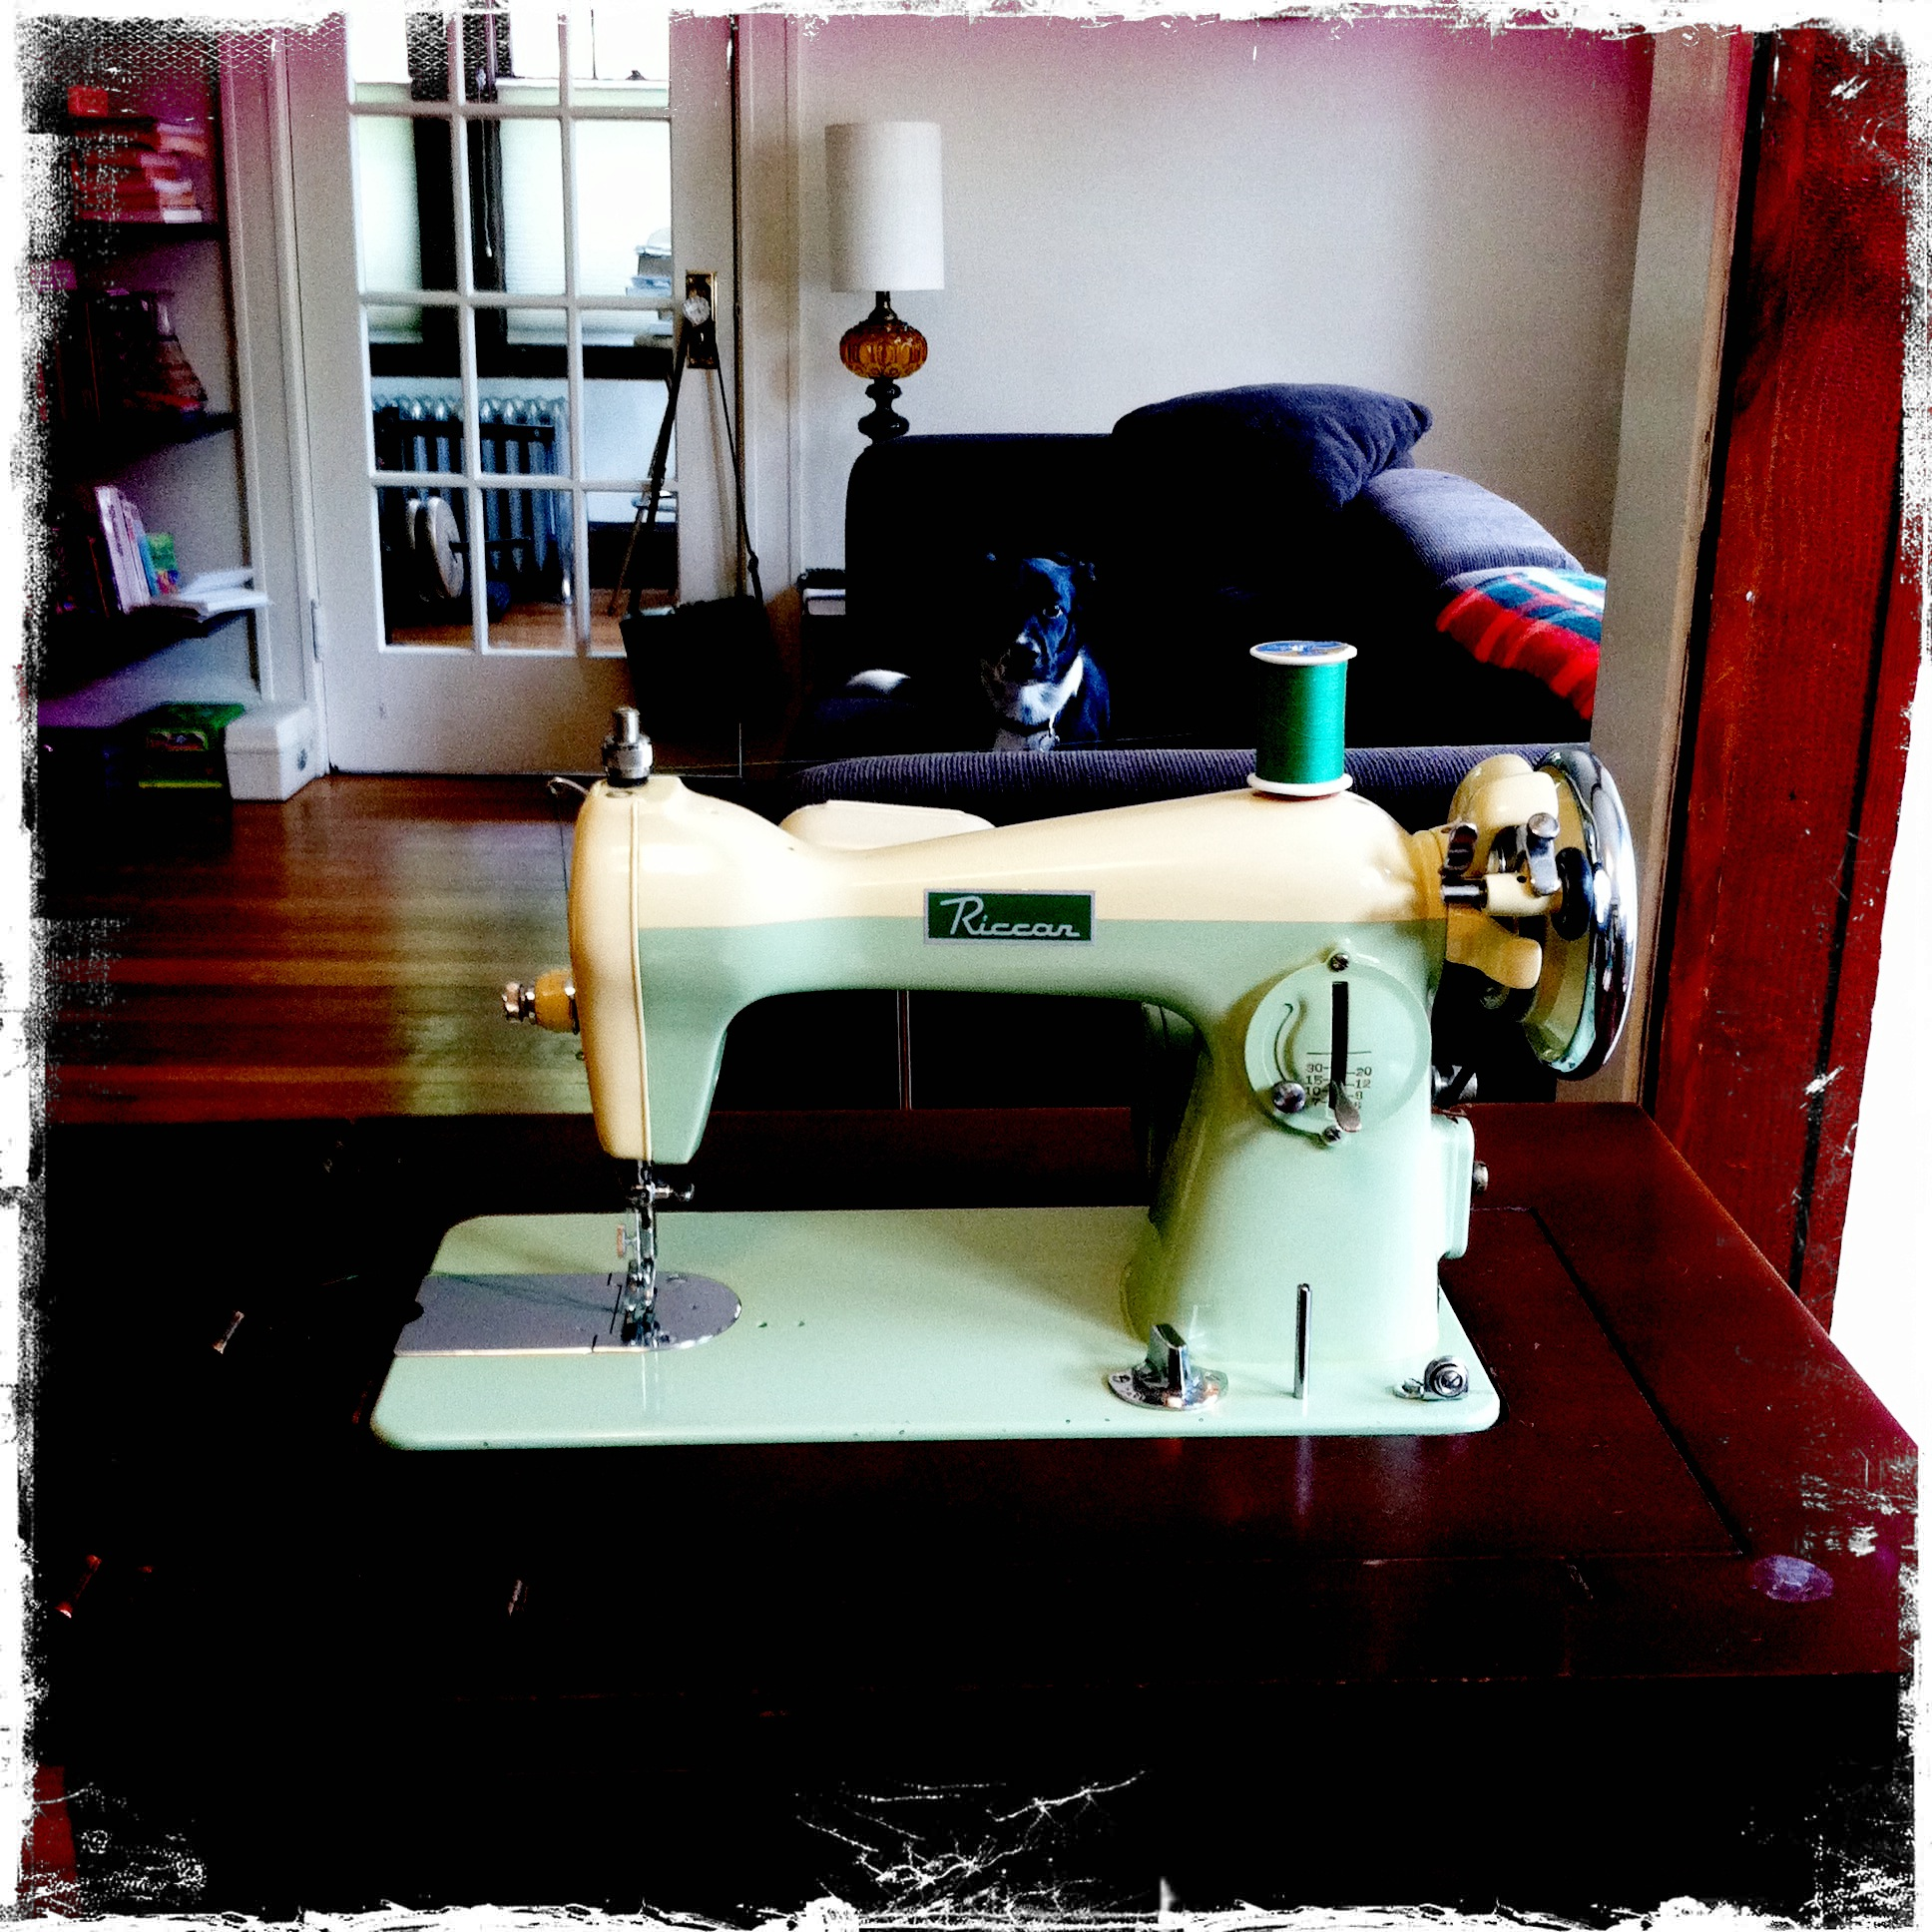 Zen and the art of sewing machine maintenance | threadsquare